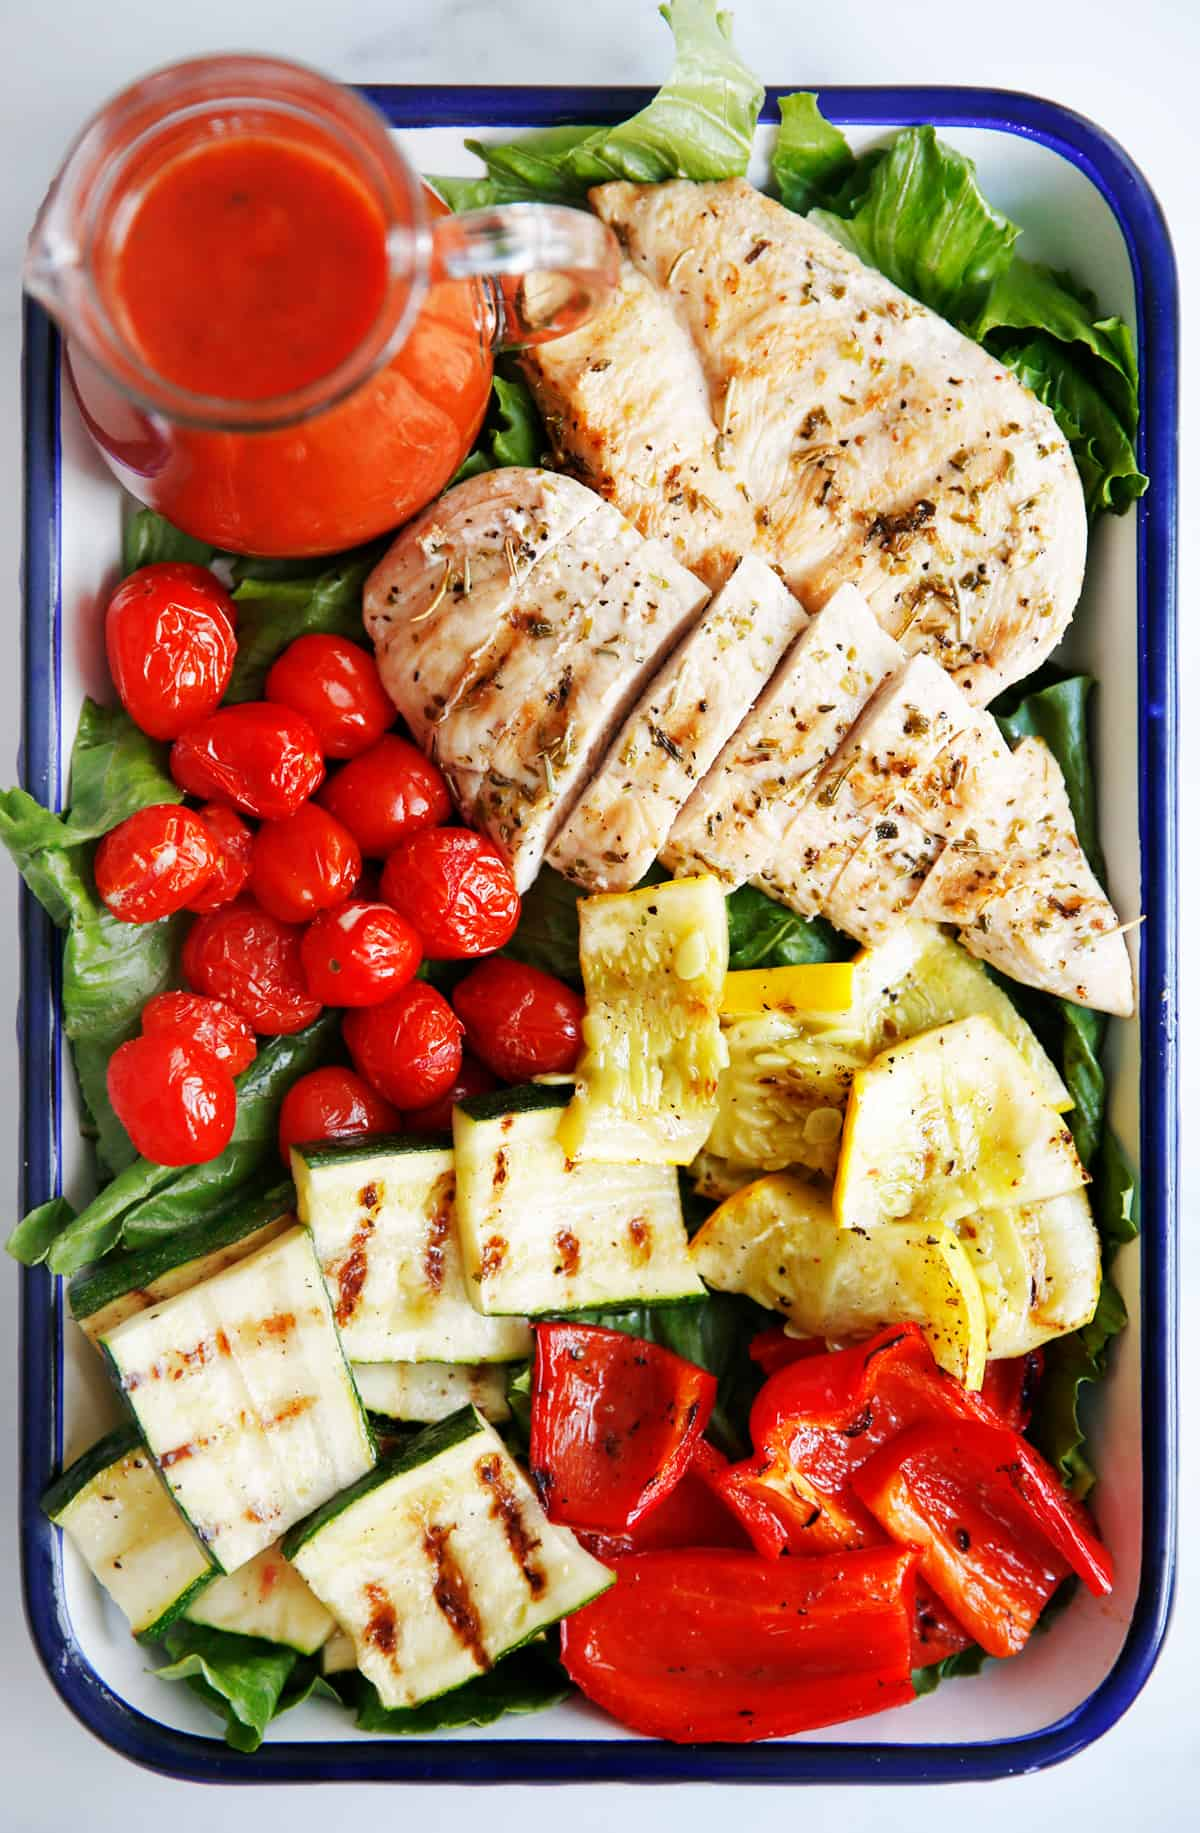 Grilled Chicken And Vegetables With Tomato Vinaigrette Lexi S Clean Kitchen